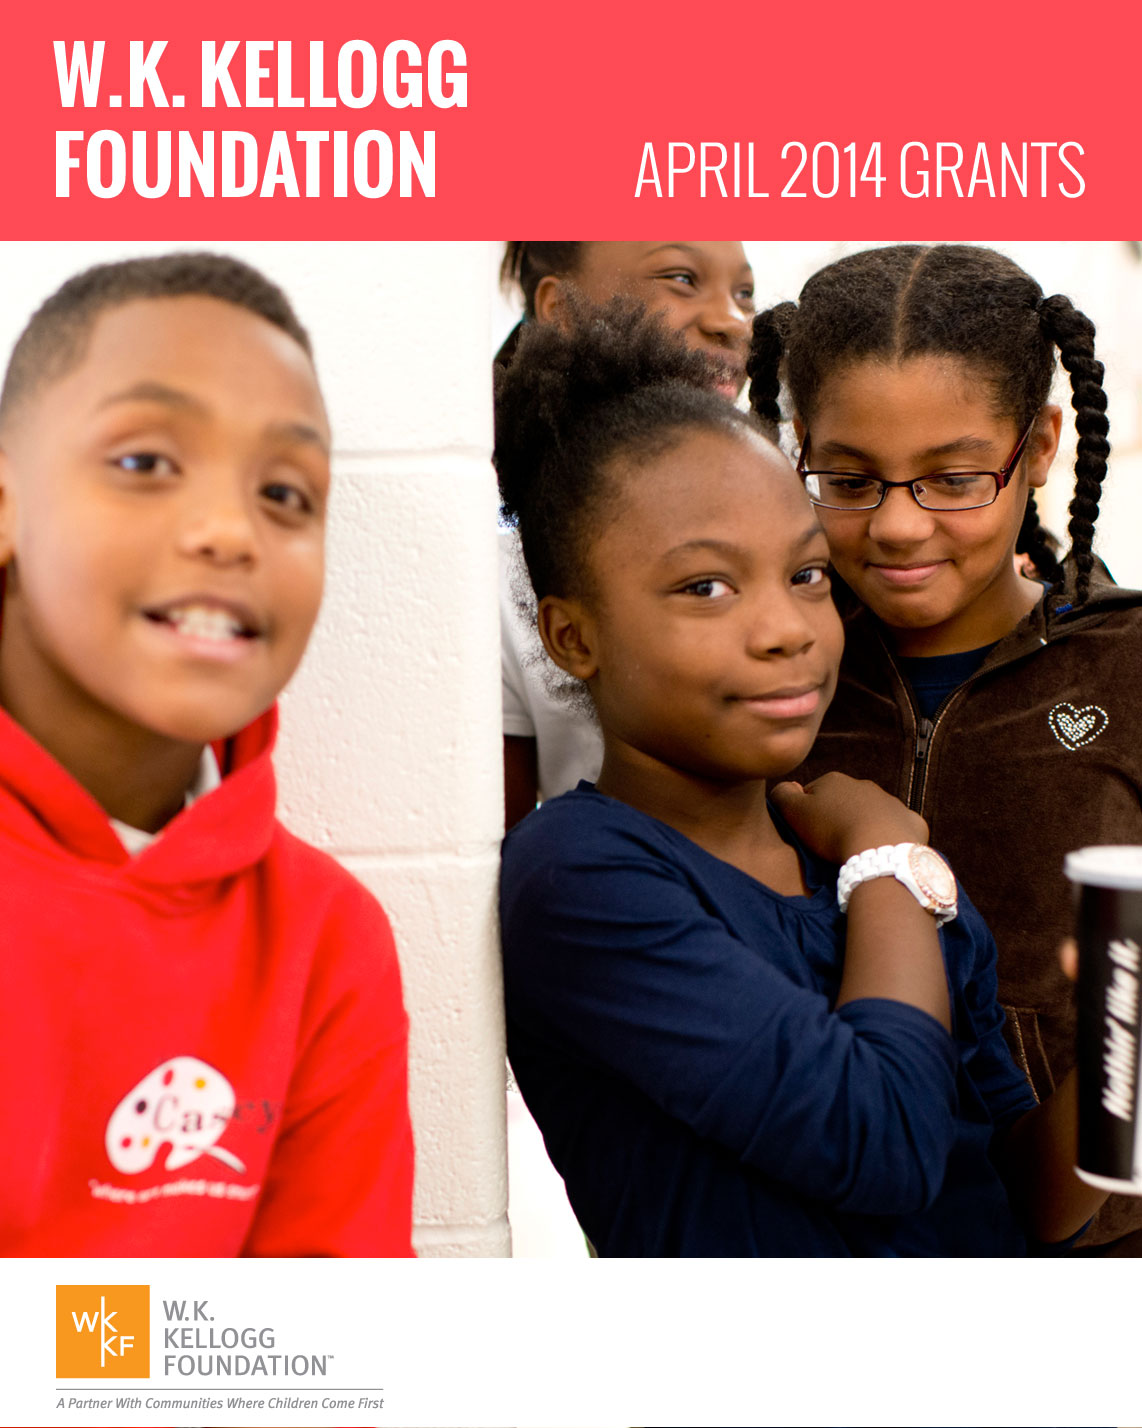 W.K. Kellogg Foundation Grants - April 2014